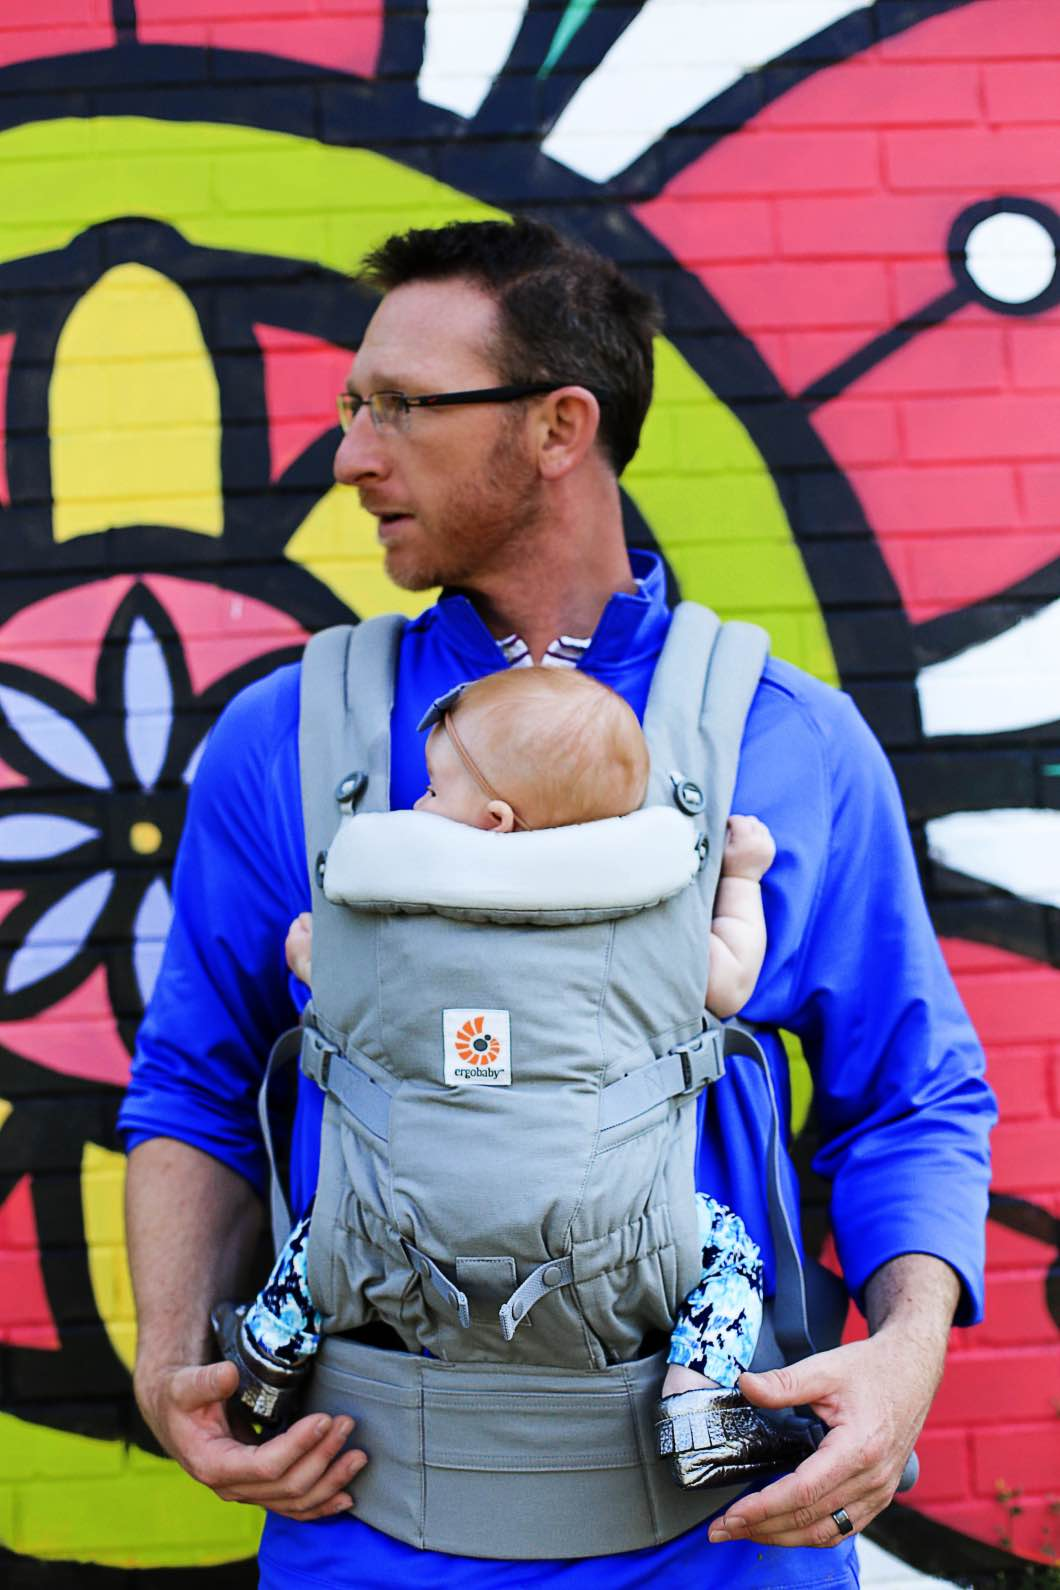 Ergobaby ADAPT Carrier Review